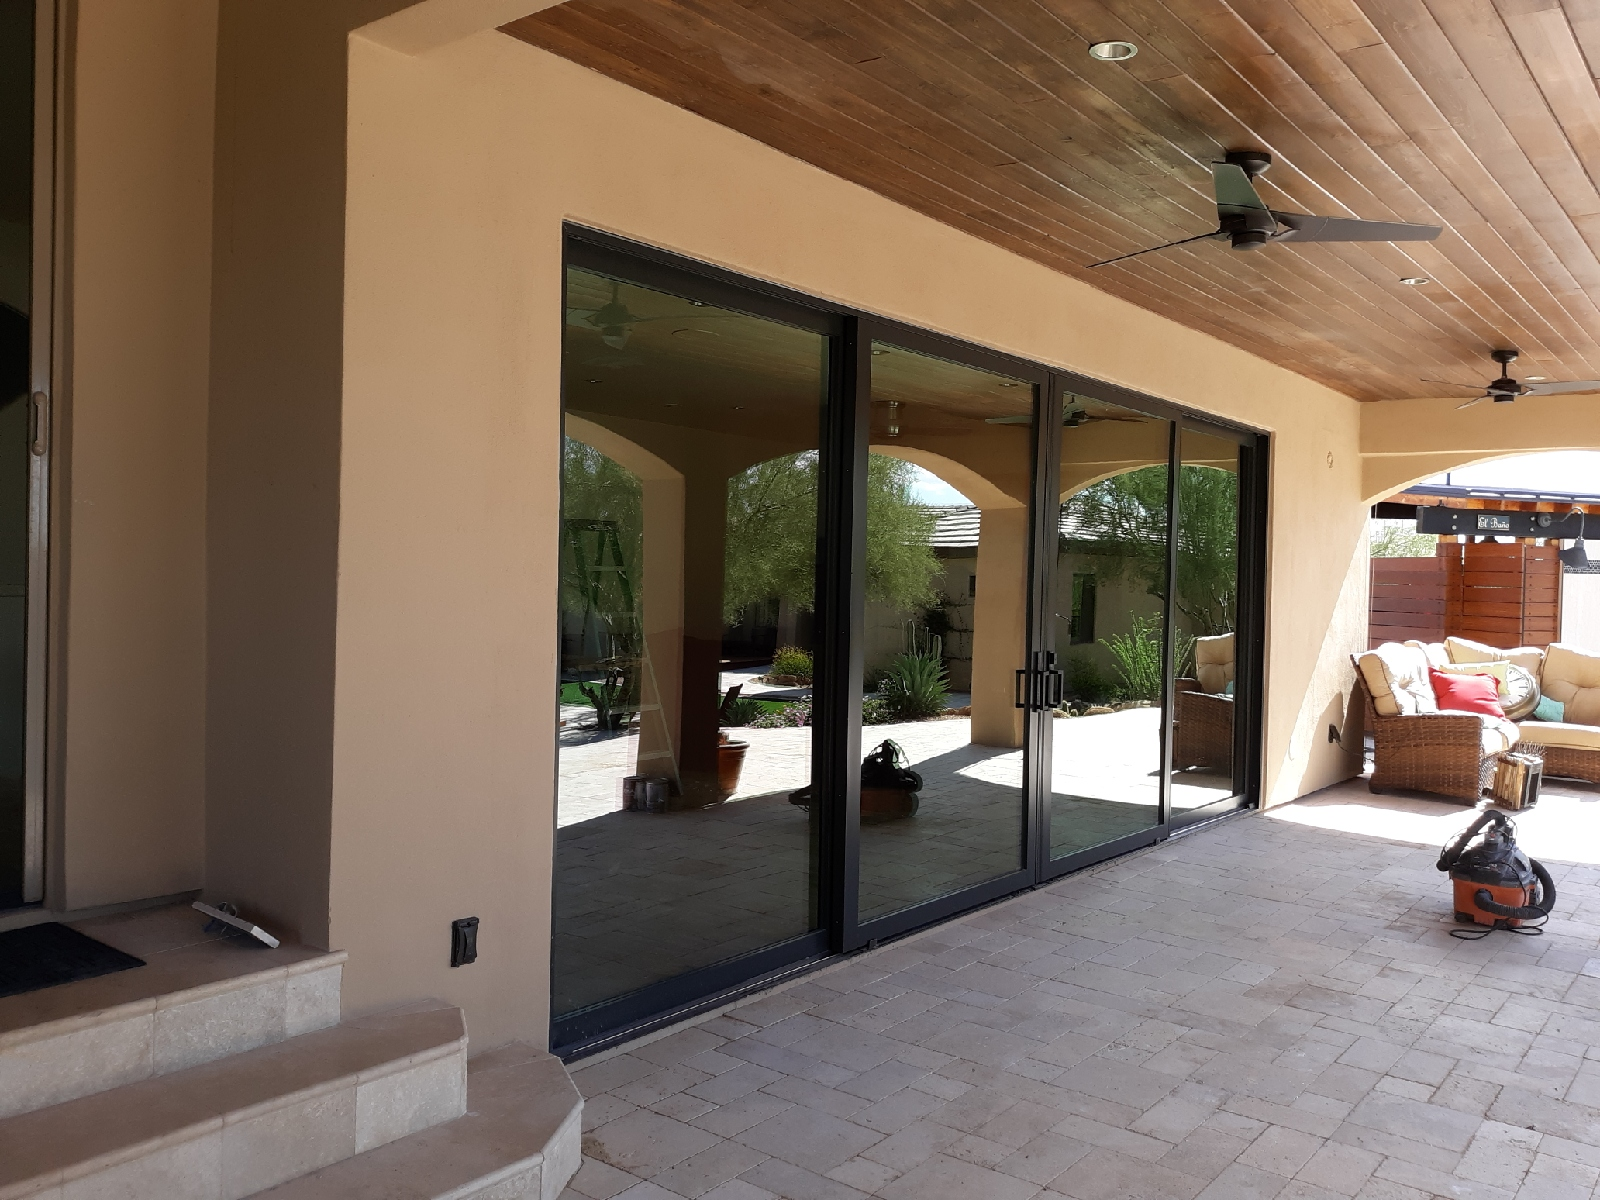 Arizona Window and Door in Scottsdale and Tucson showing multipanel doors